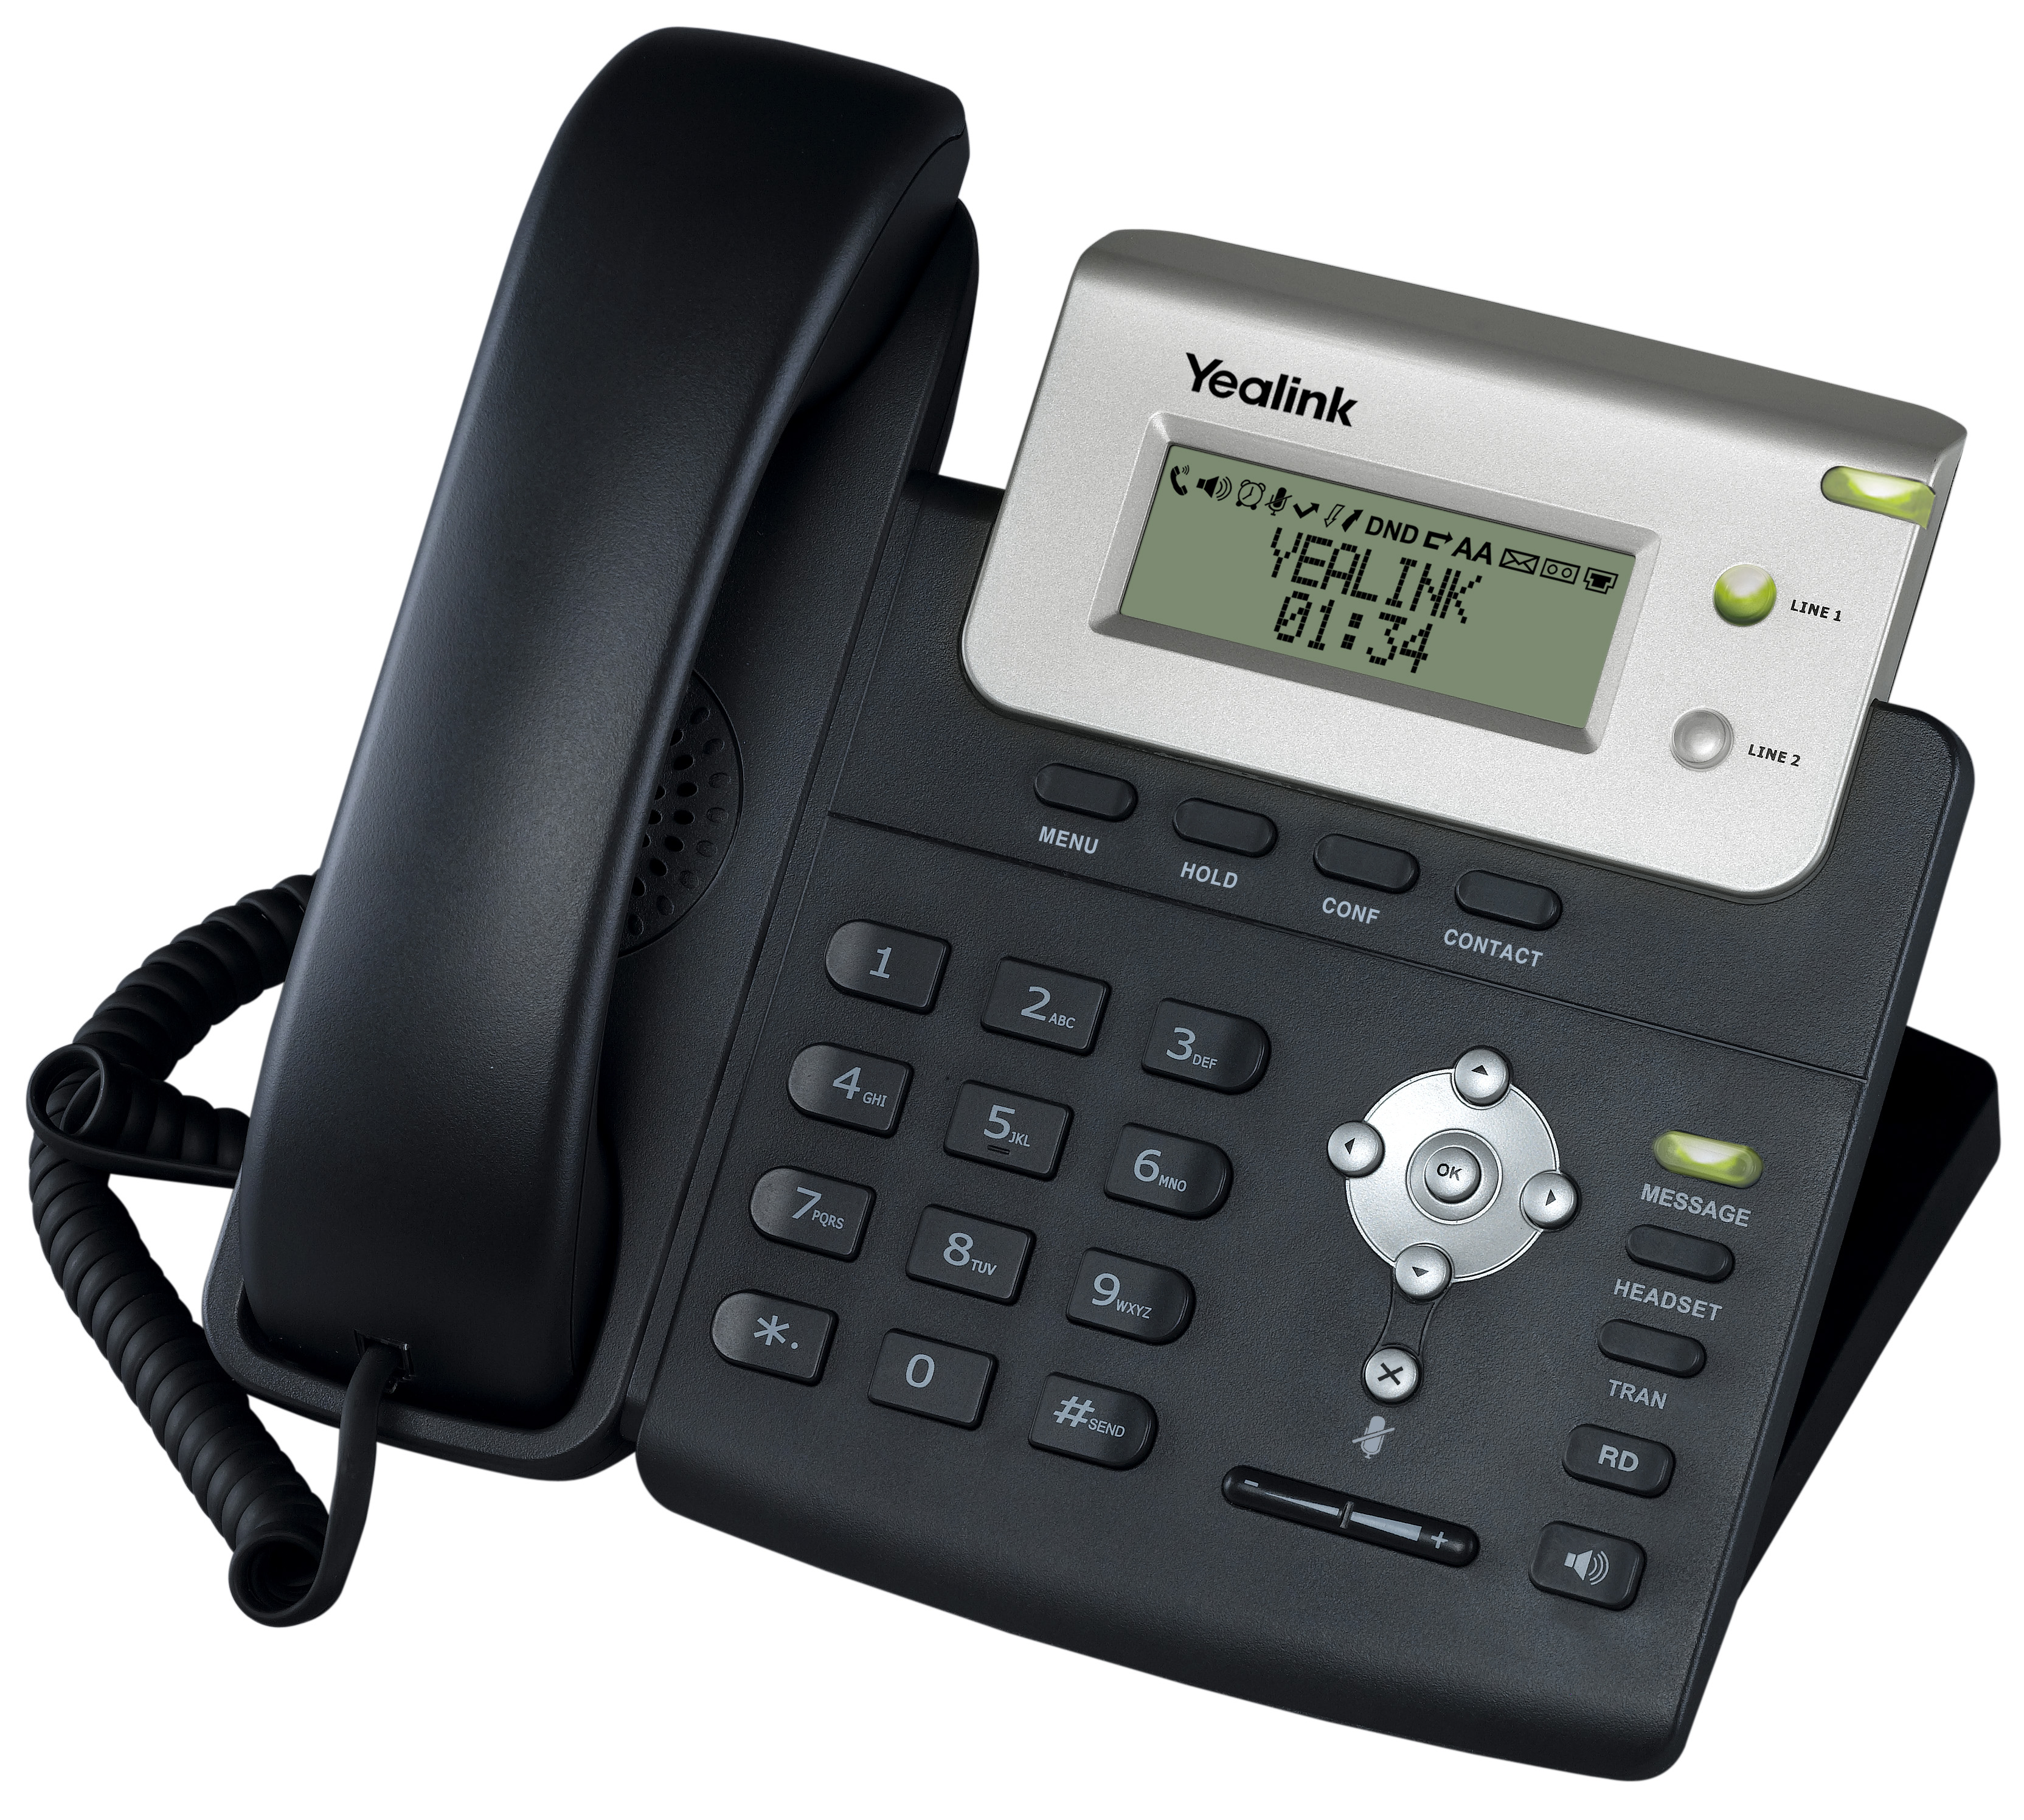 Yealink T20pn Entry Level Ip Phone Manual Guide